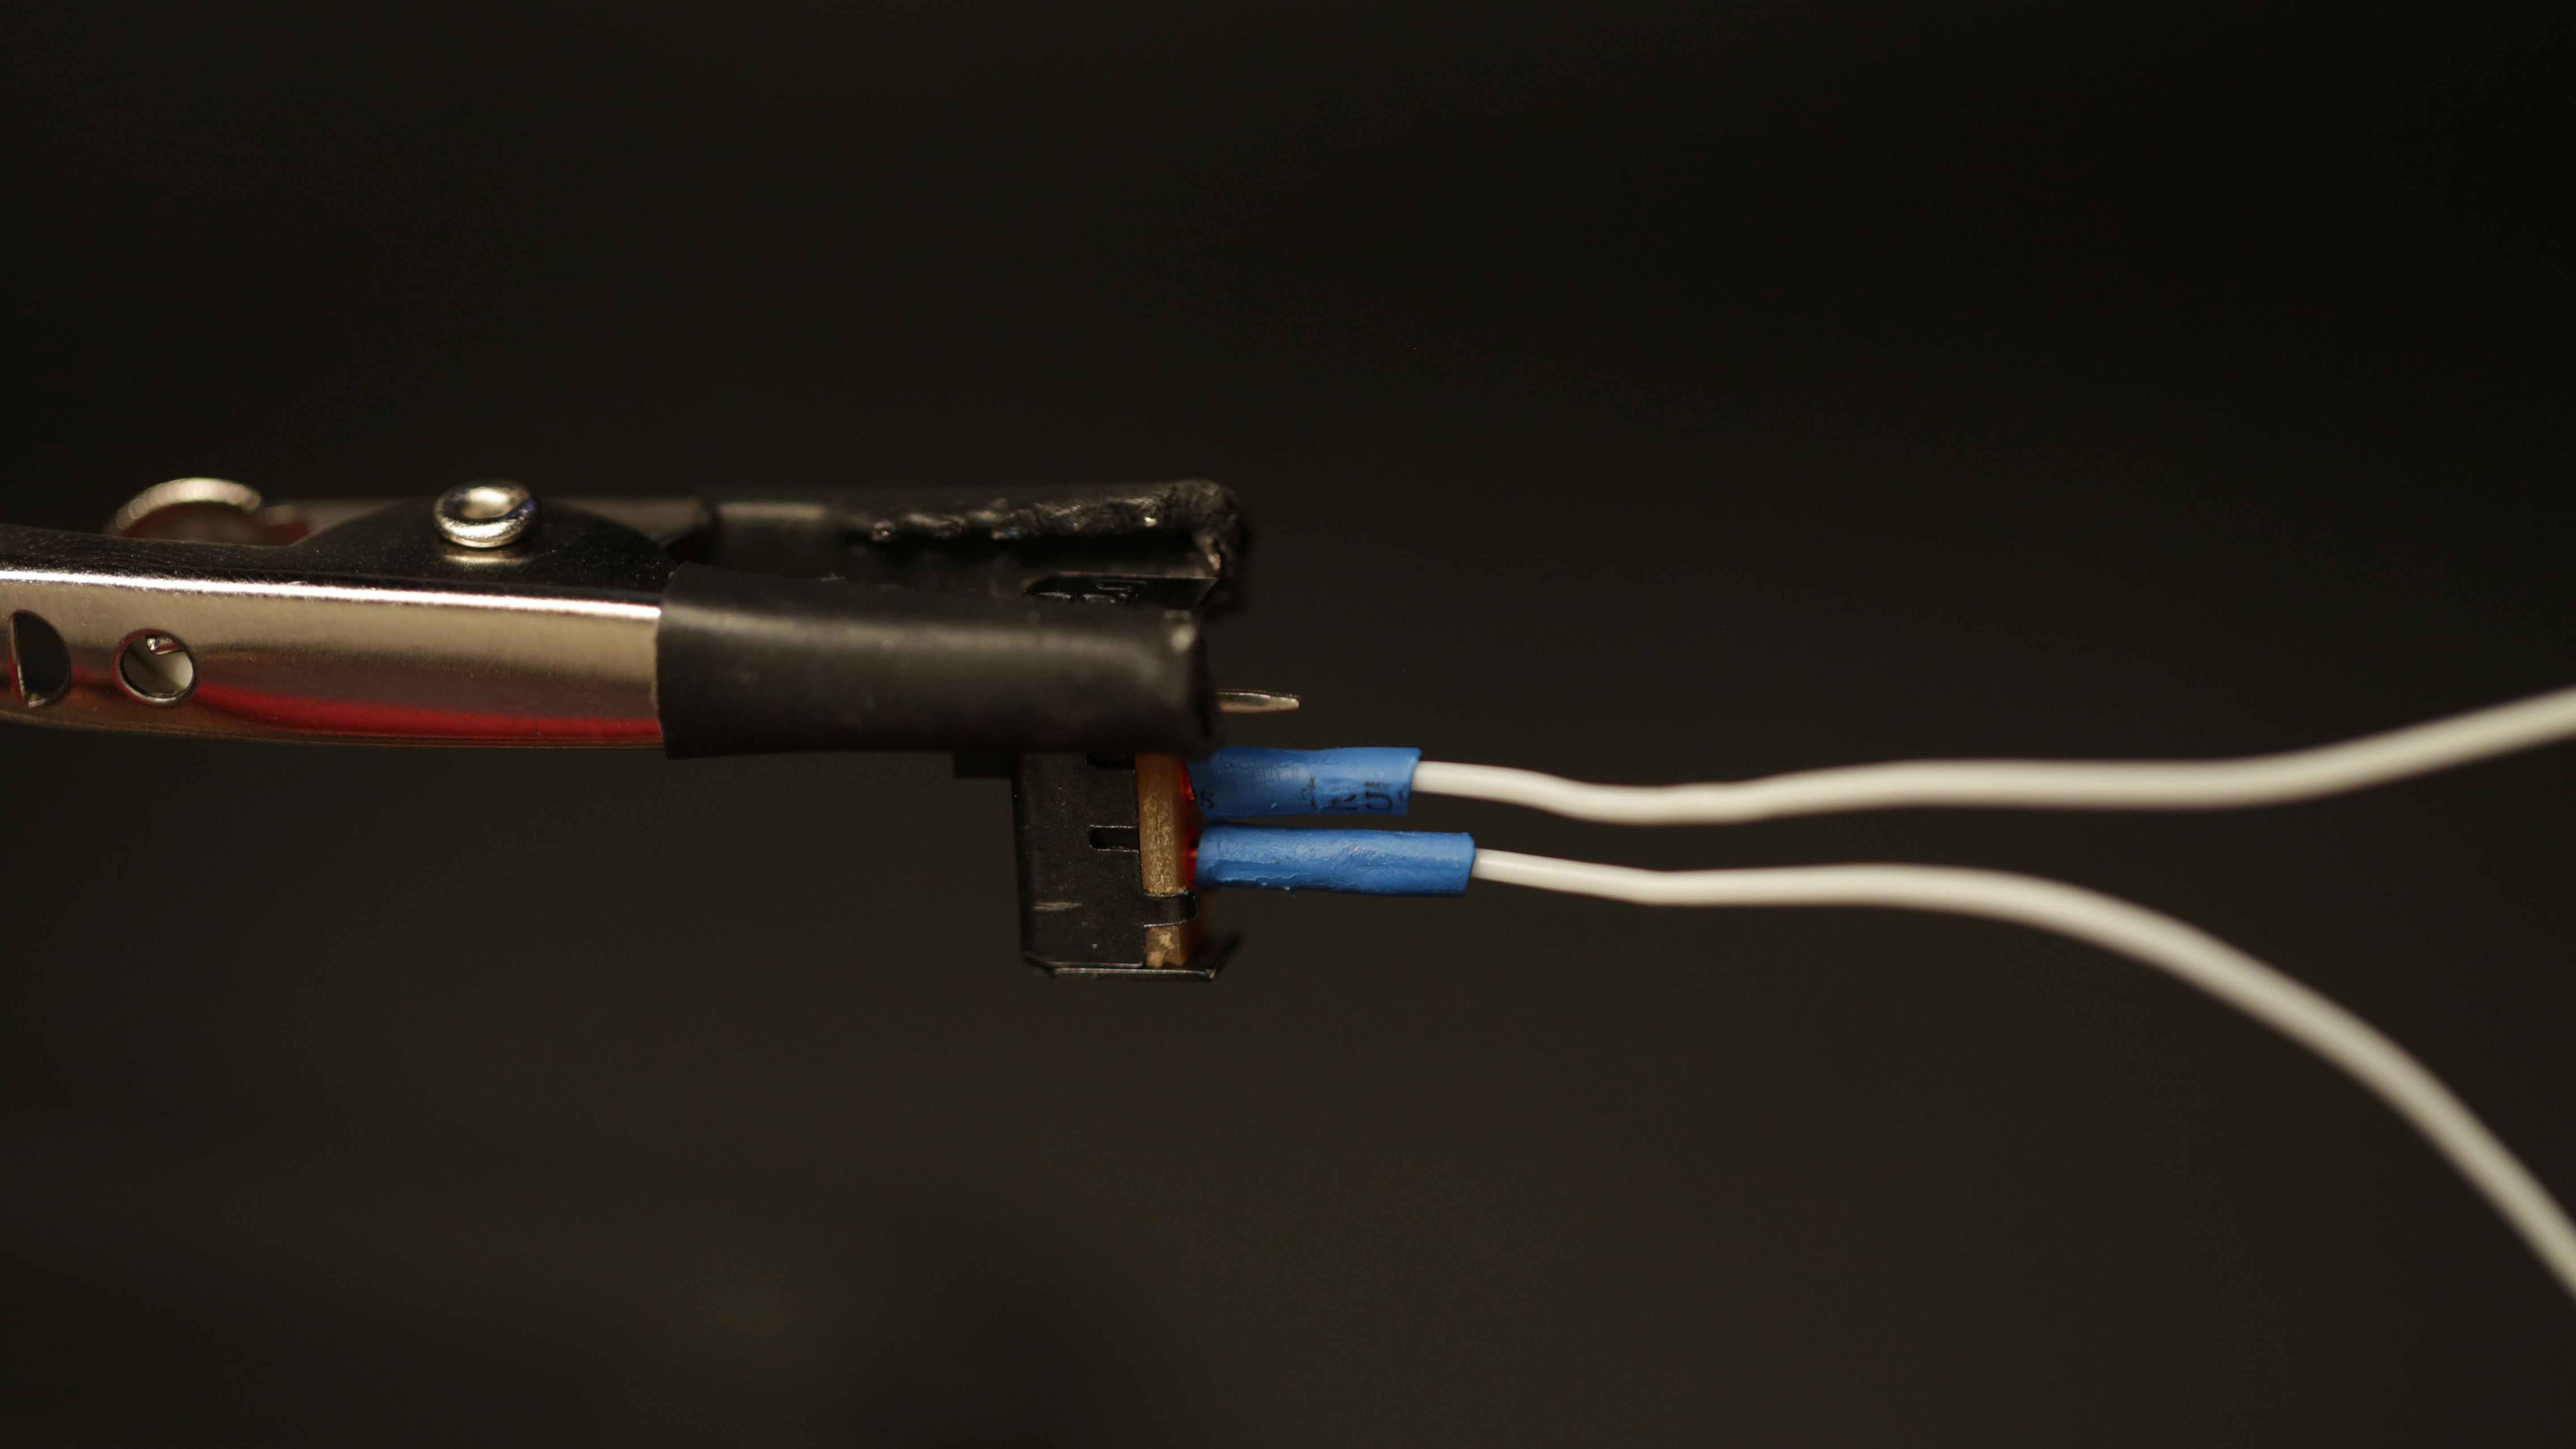 3d_printing_heat-tube-shrunk.jpg